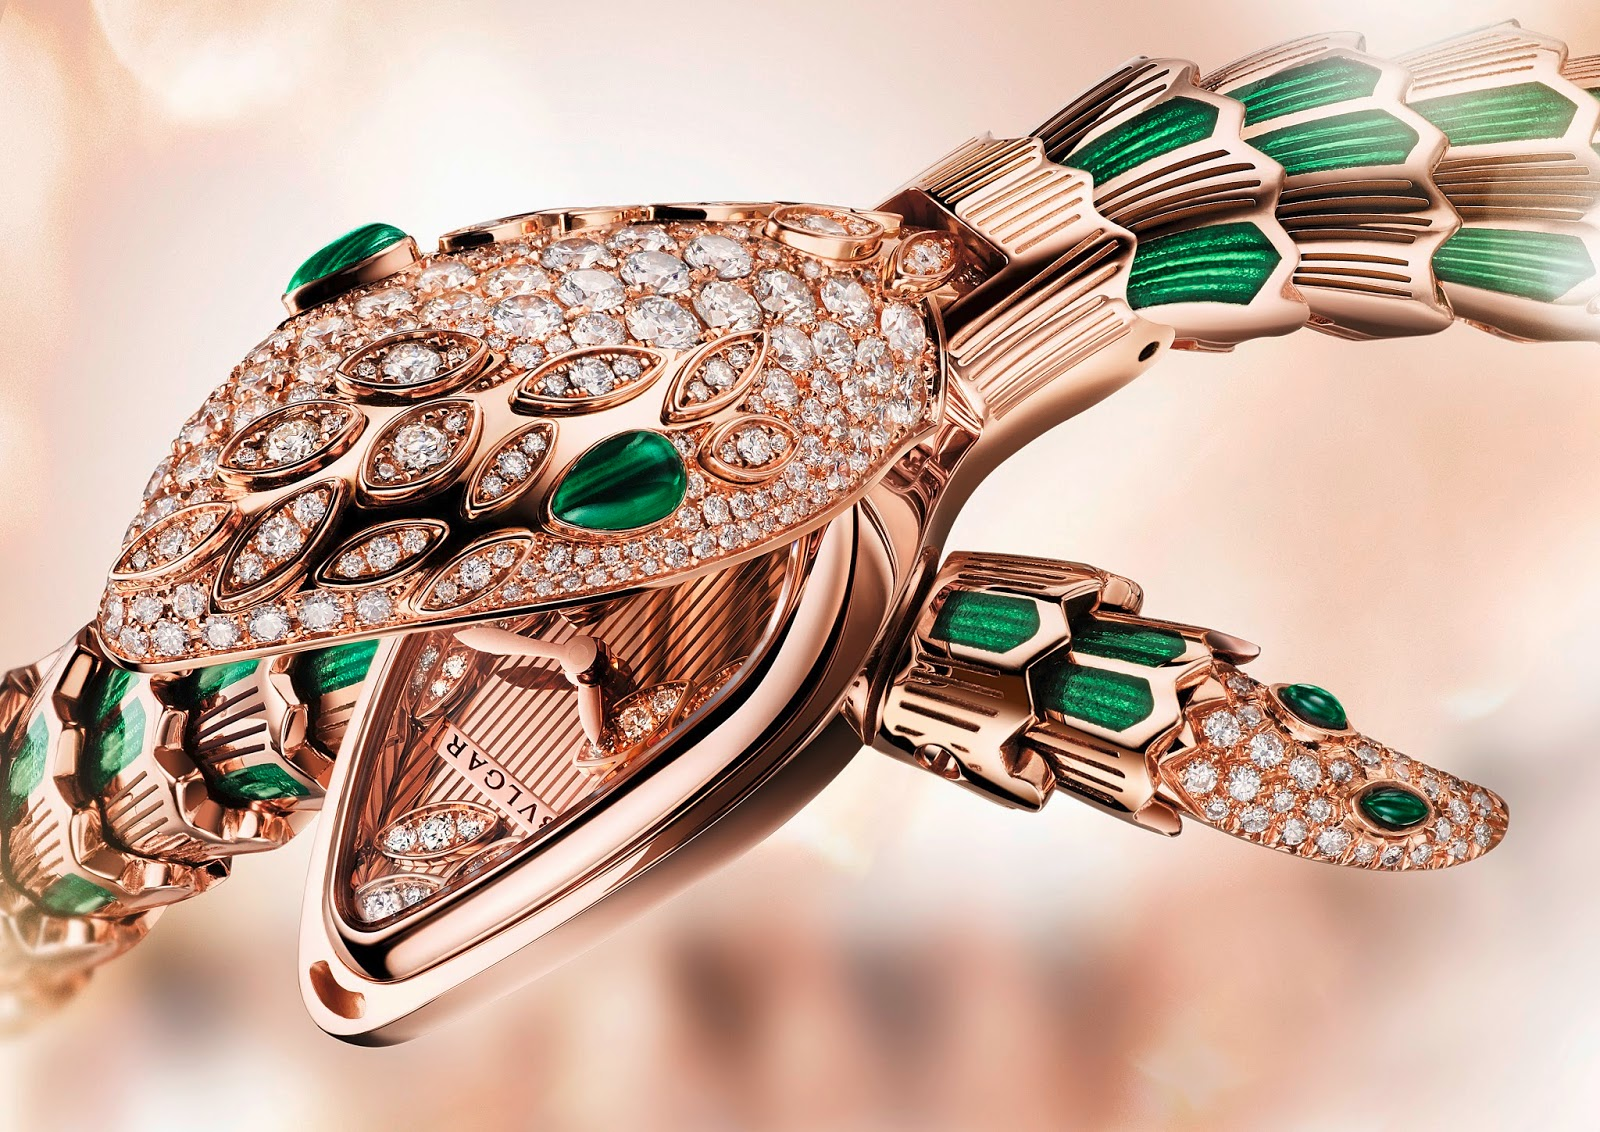 Bulgari's New High Jewellery Serpenti Watches